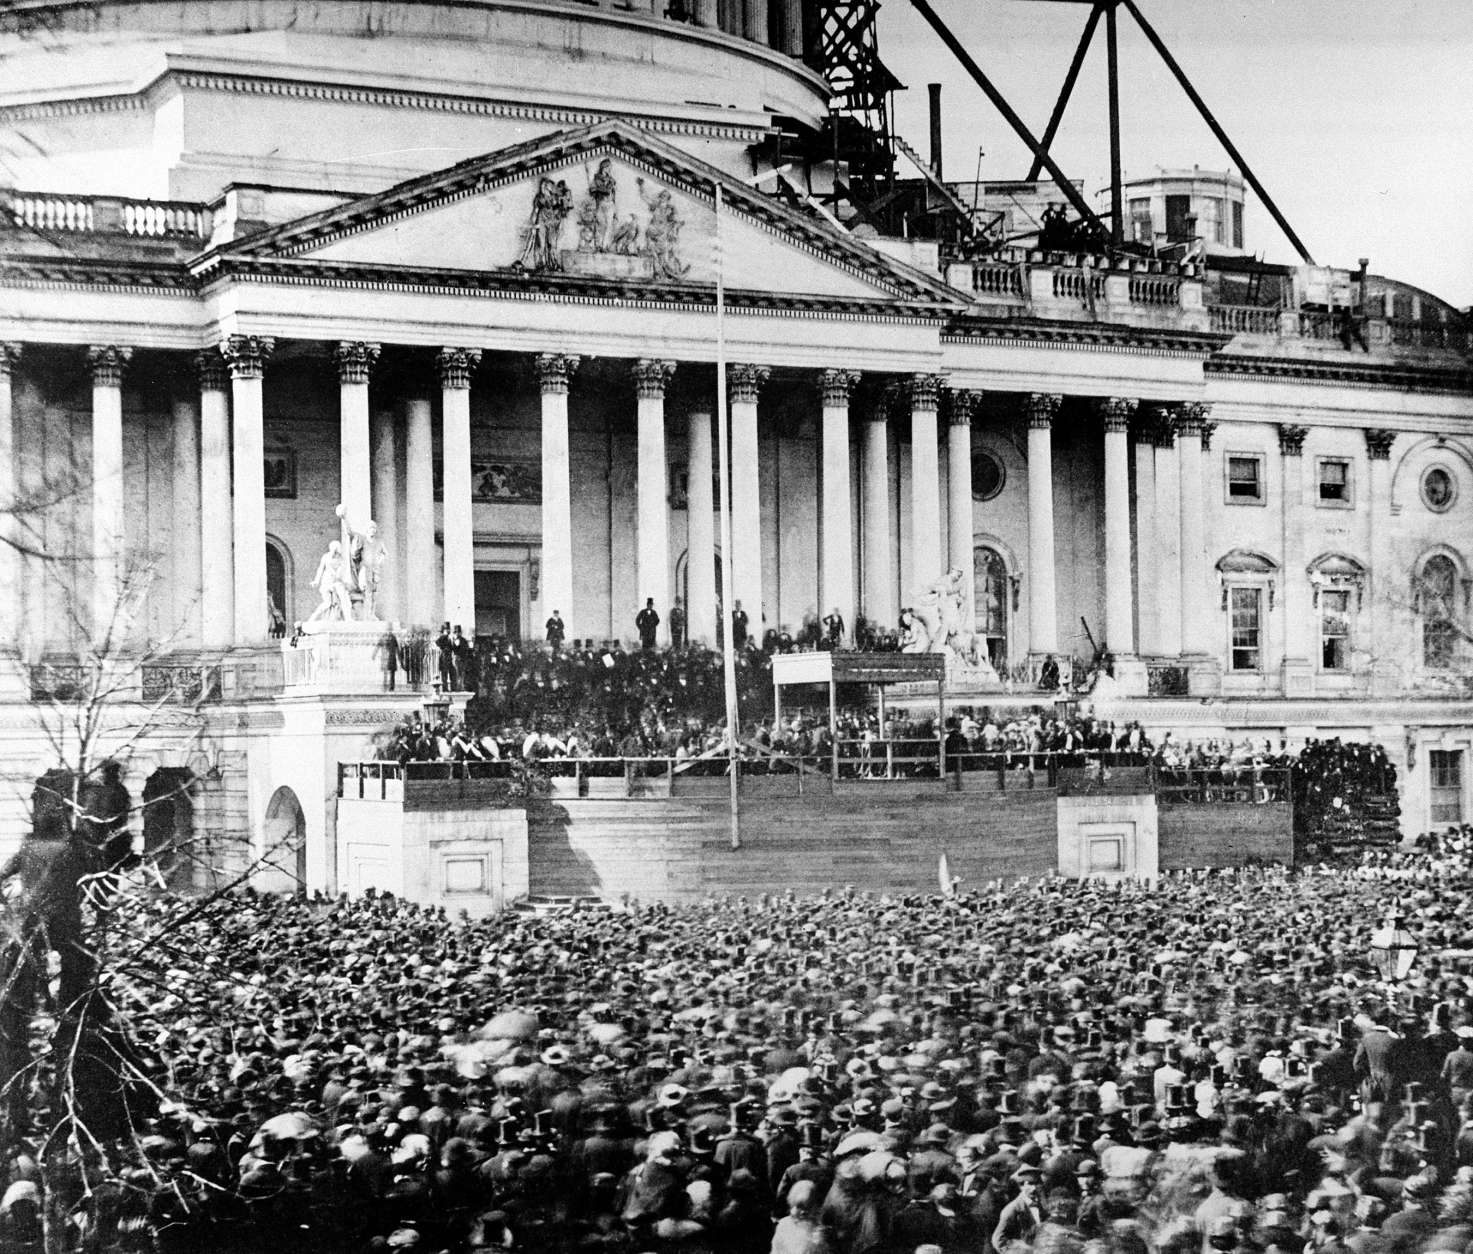 U.S. President Abraham Lincoln stands under cover at center of Capitol steps during his inauguration in Washington, D.C., on March 4, 1861.  The scaffolding at upper right is used in construction of the Capitol dome.  (AP Photo)